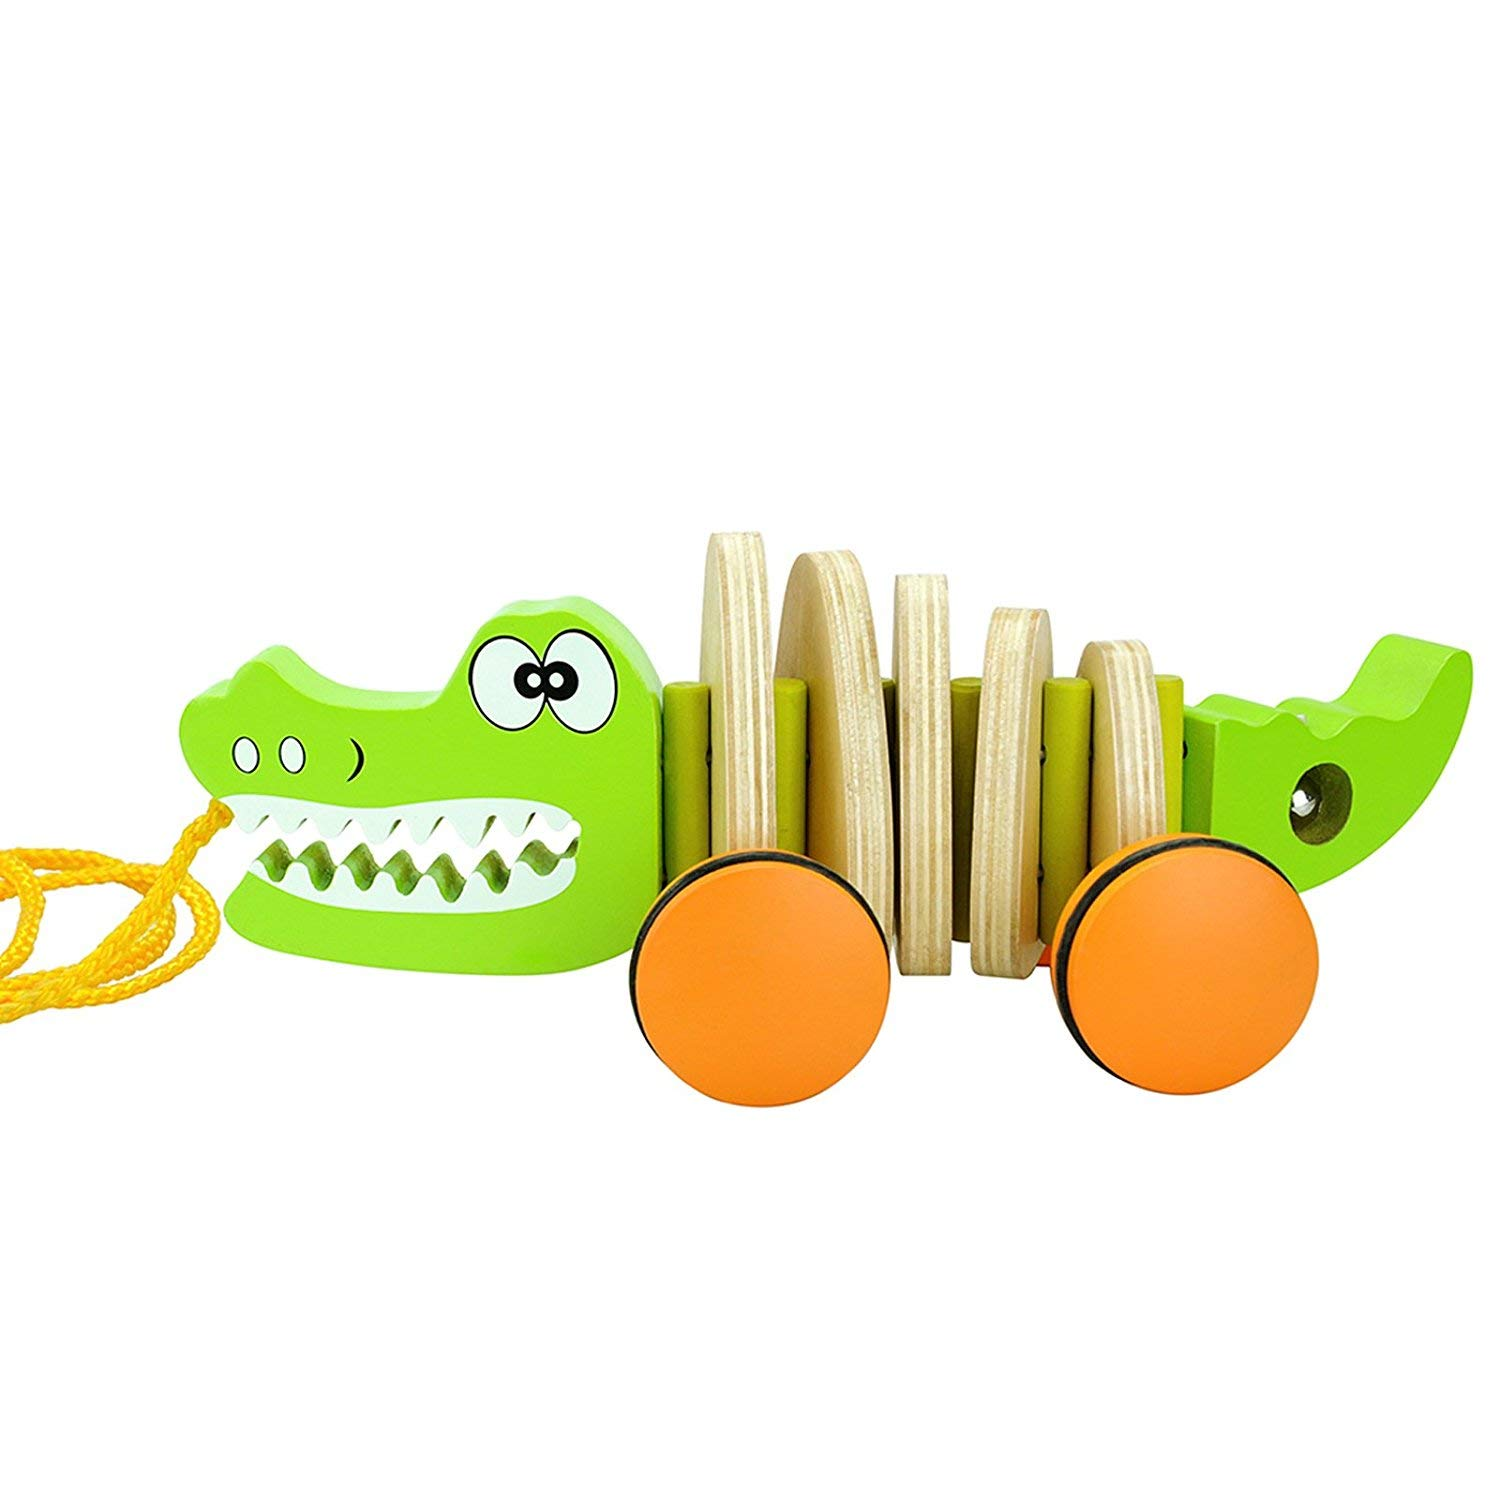 Timy Crocodile Wooden Pull Along Walking Educational Toy for Toddler Baby